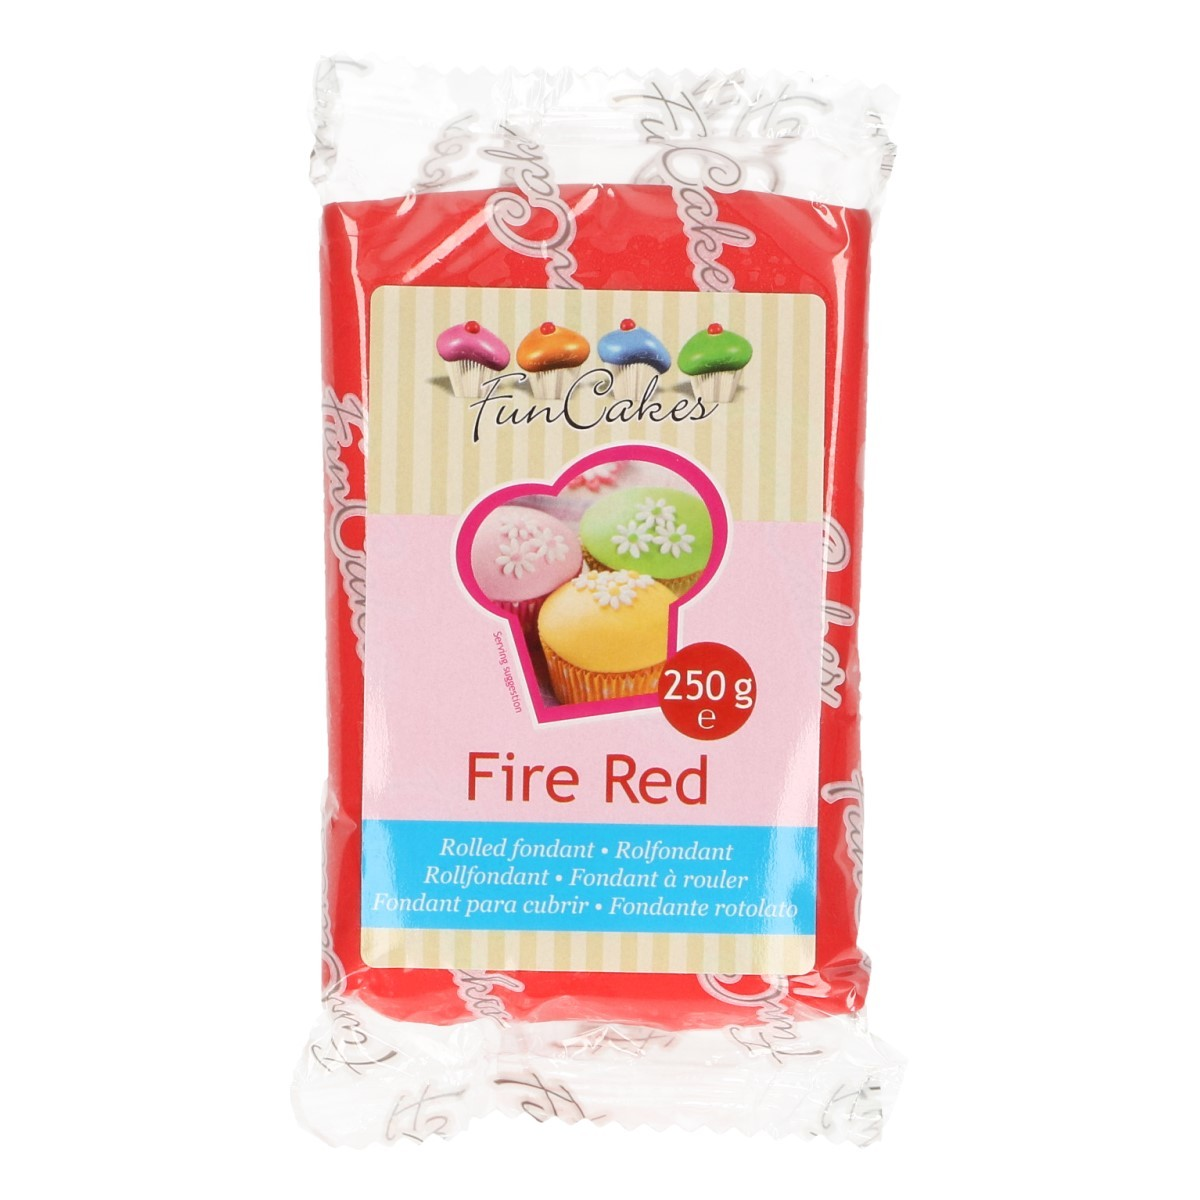 FunCakes Rolfondant -Fire Red- -250g-